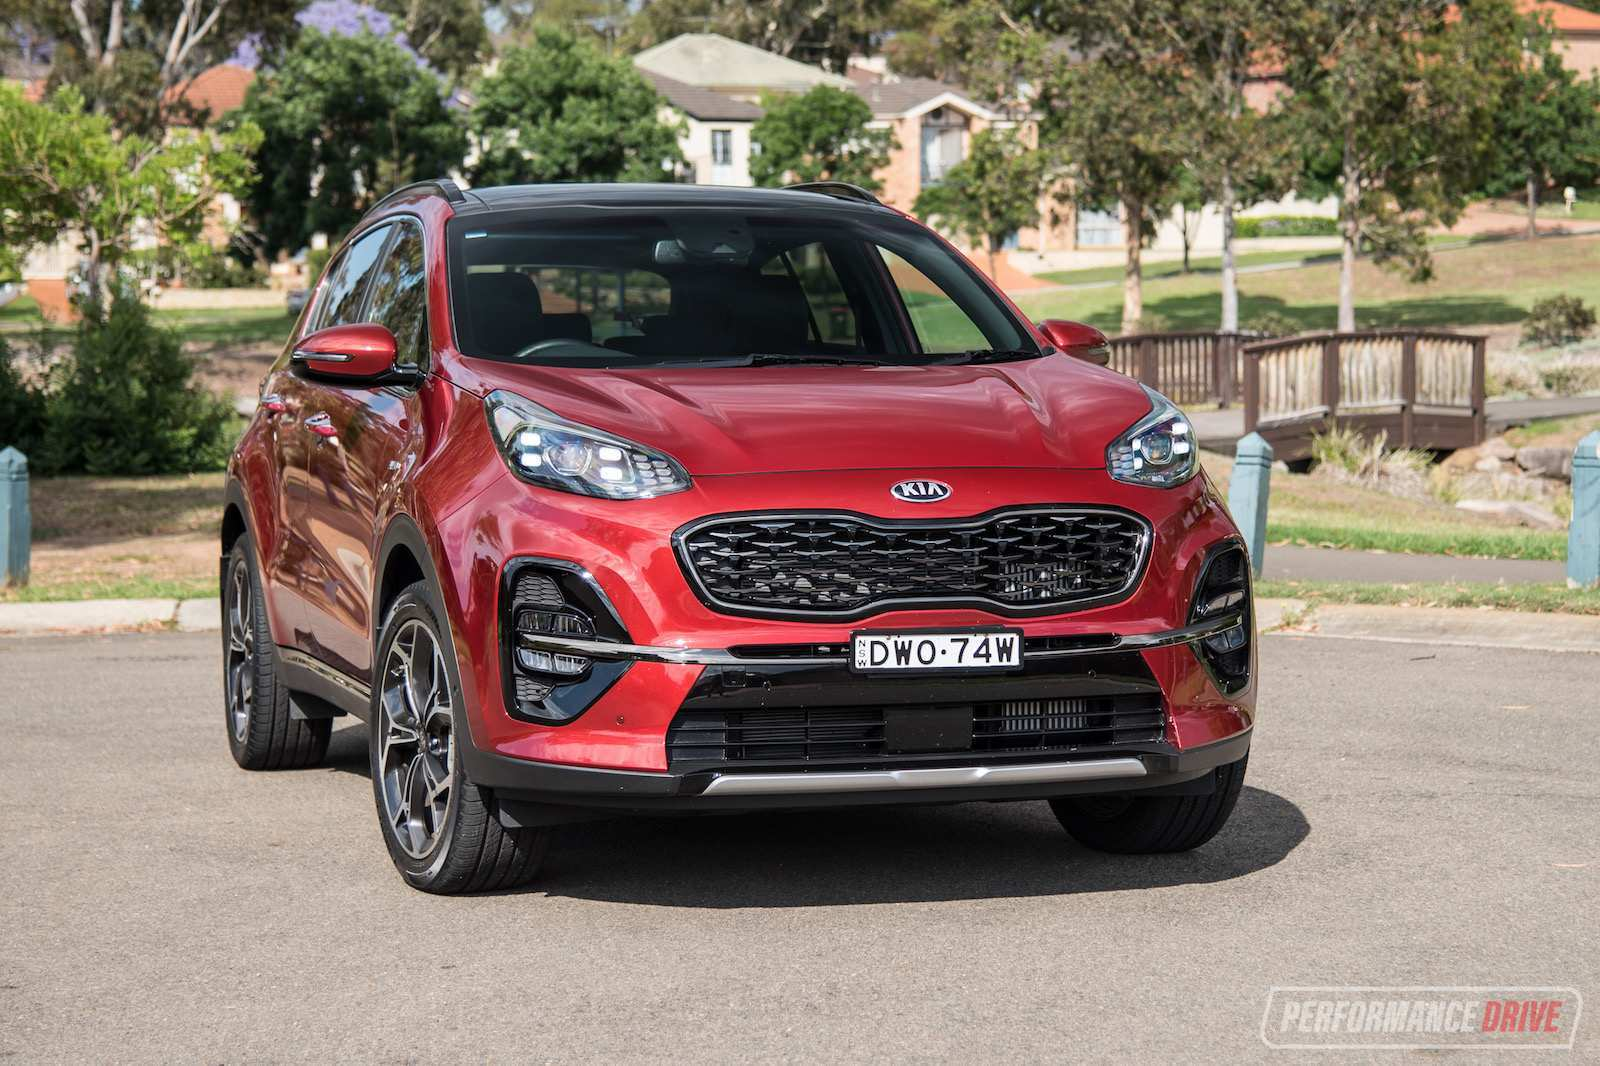 54 Gallery of Kia Sportage Gt Line 2019 Prices for Kia Sportage Gt Line 2019